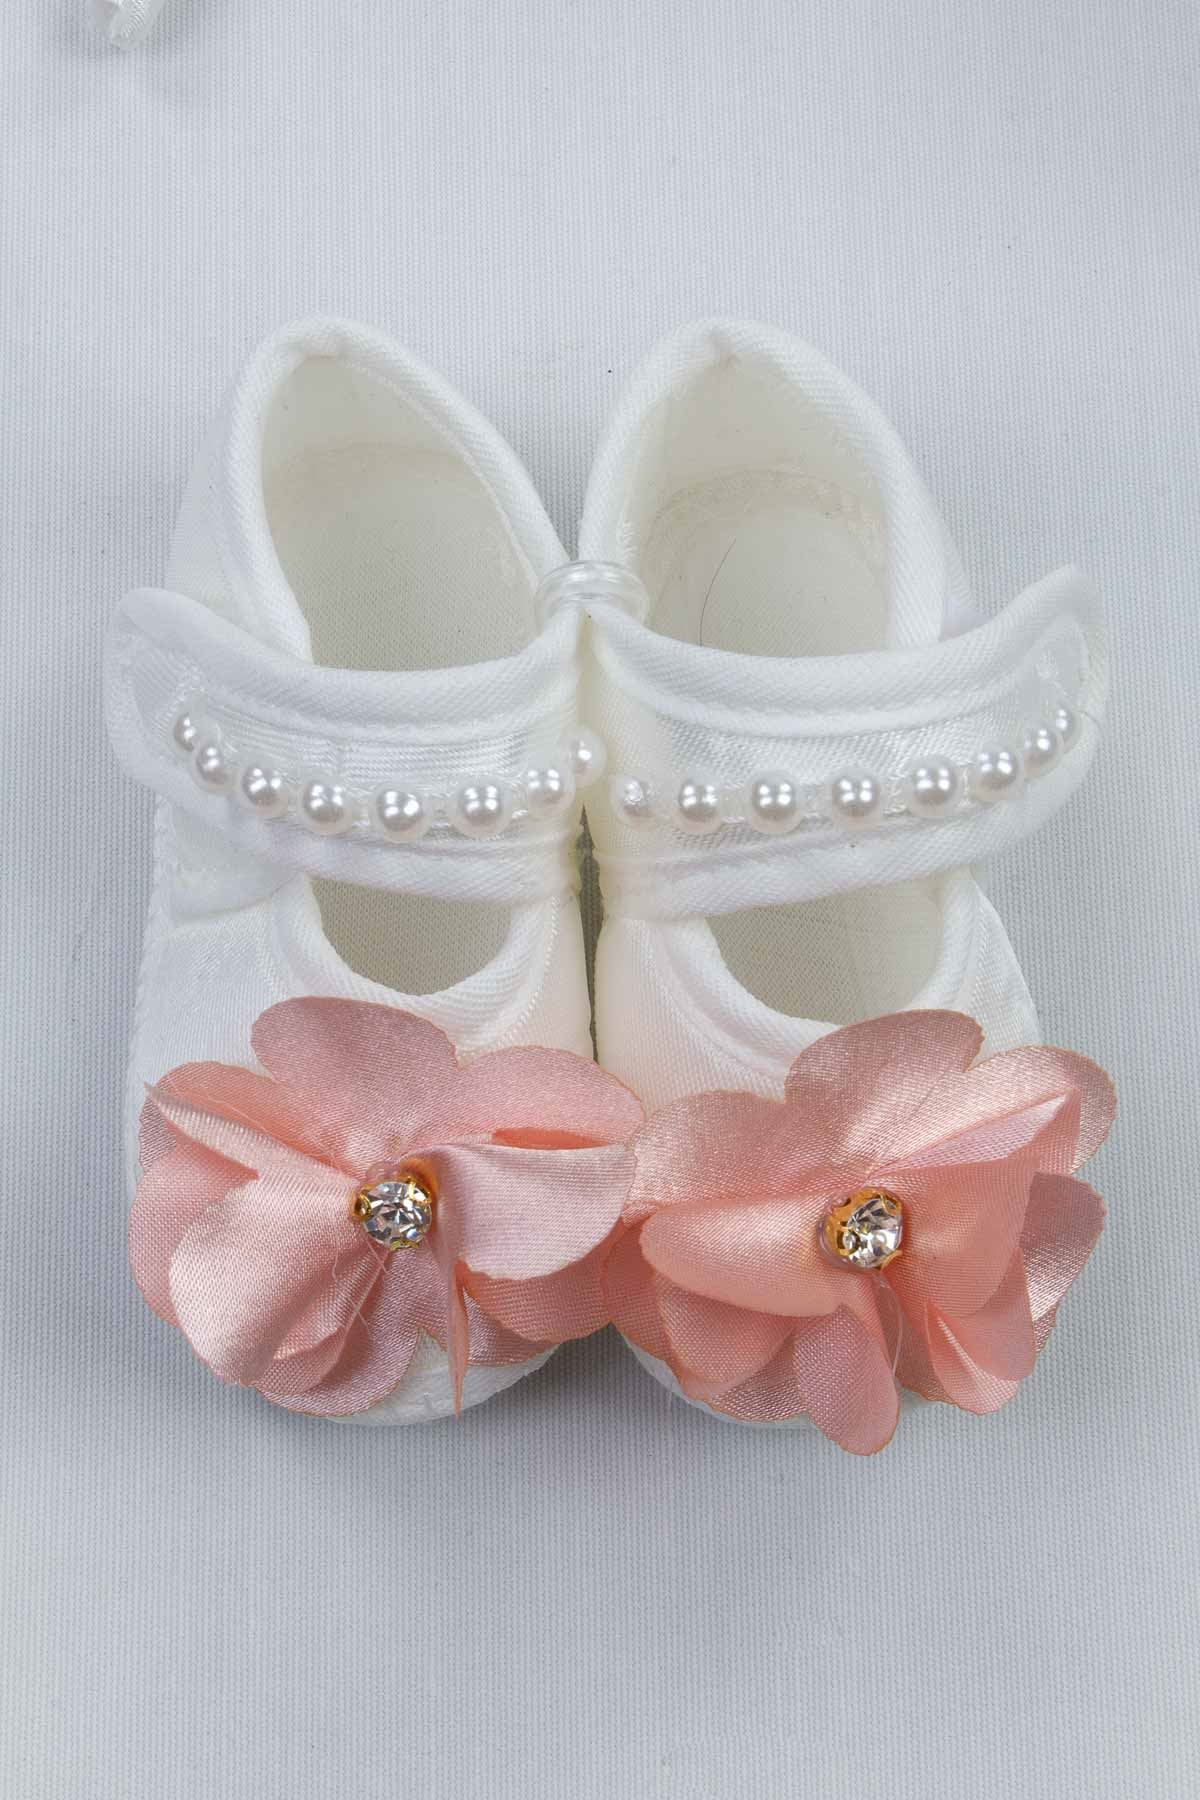 White Puerperal Crown Slippers and Baby Booties Bandana Set